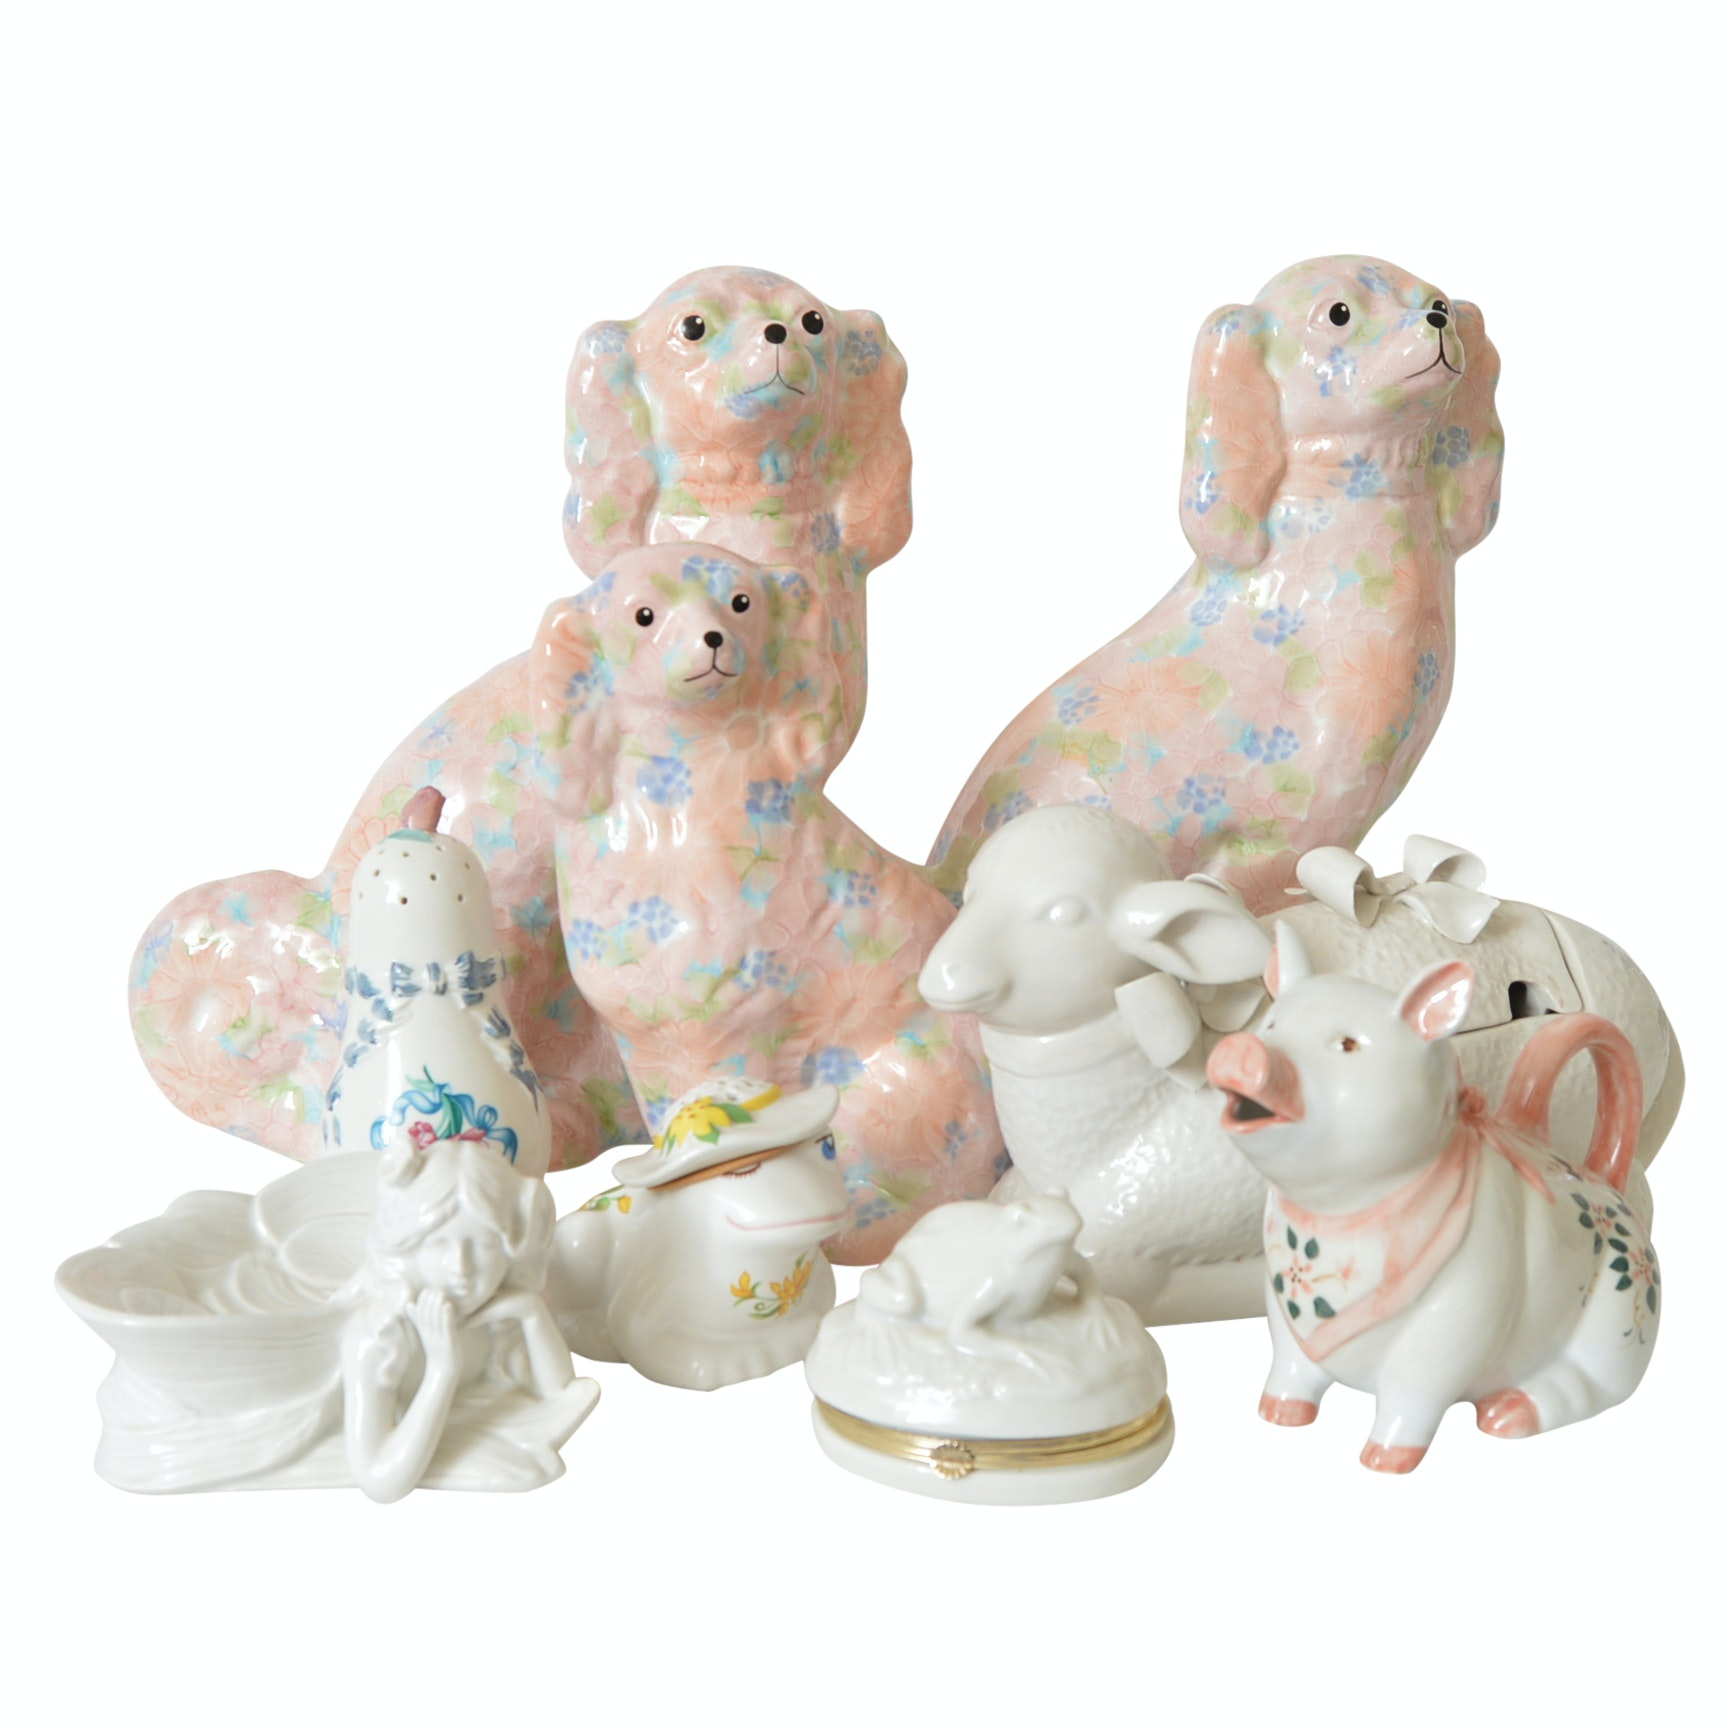 Porcelain Animal Figurines with English Spaniels